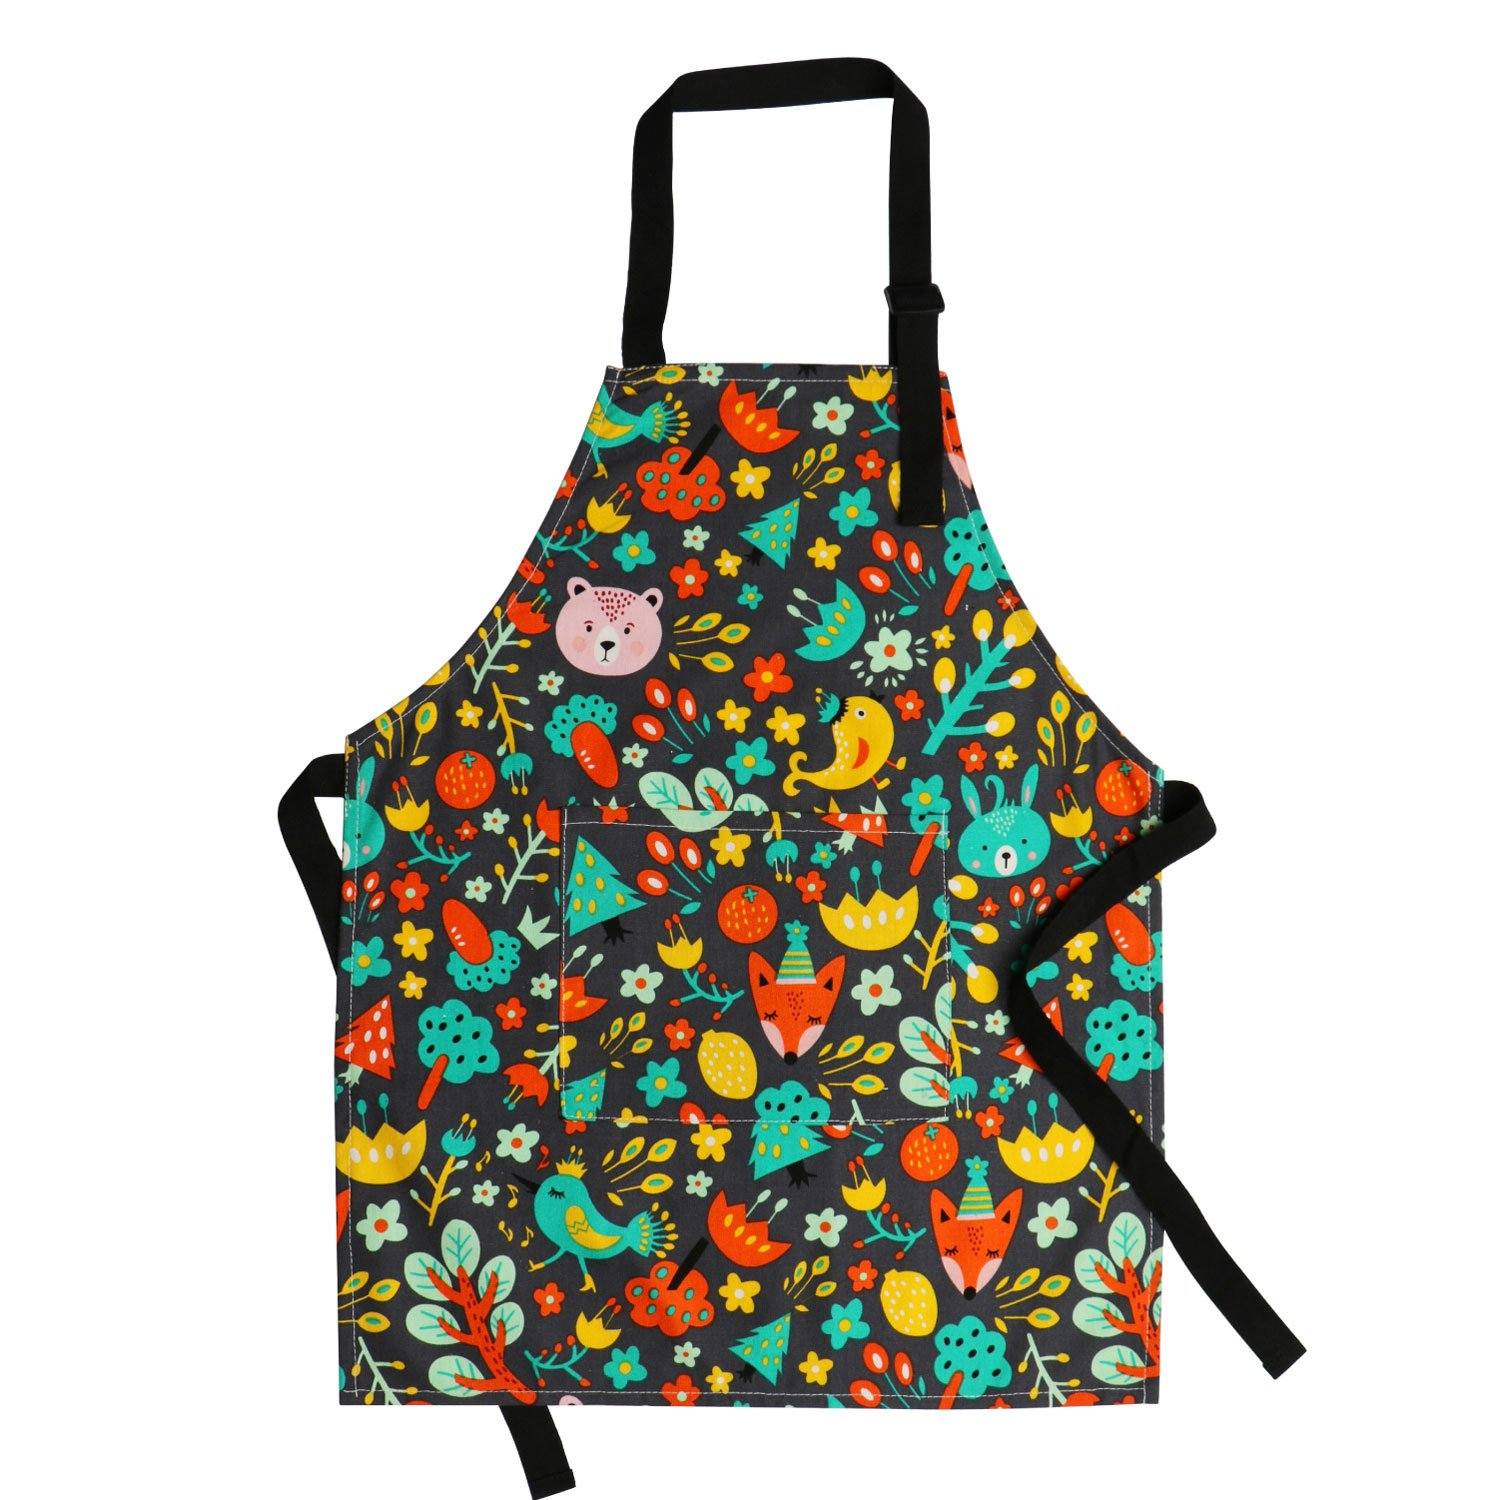 Jennice House Children's Aprons 100% Pure Cotton Canvas Kids Artists Aprons with Adjustable Neck Strap and Pocket Animal Print Child Chef Aprons for Boys and Girls Cooking Baking Painting in 2 Sizes